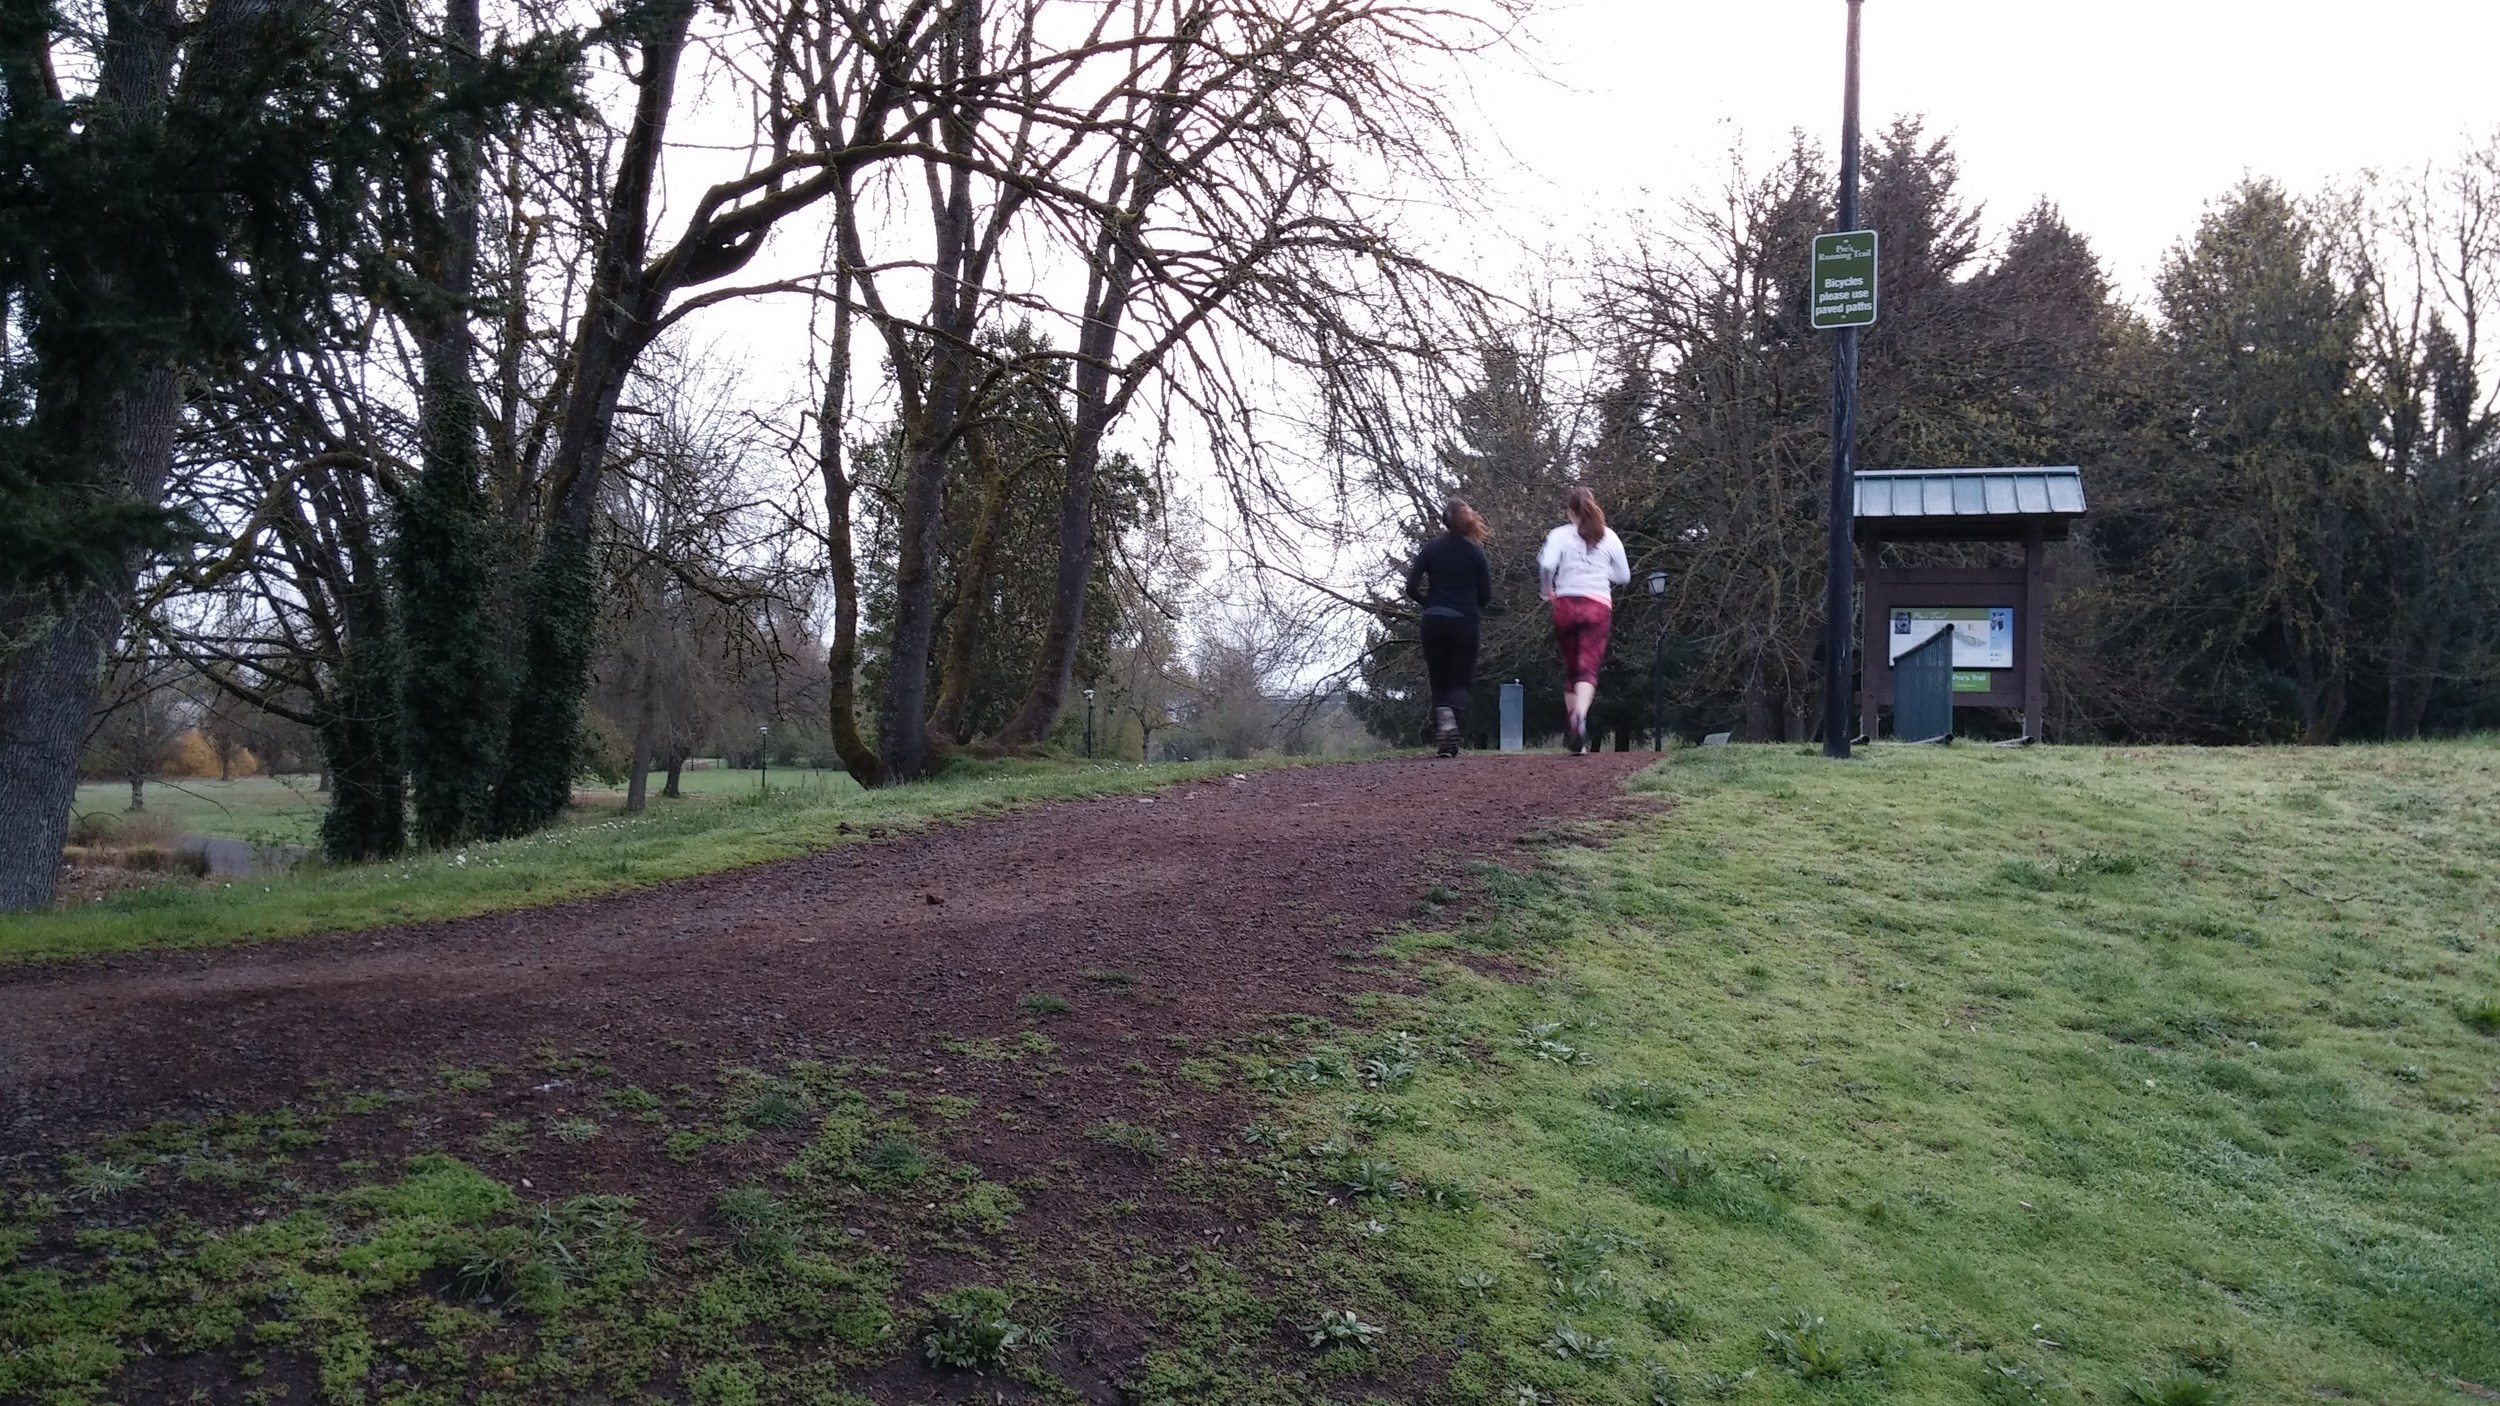 That's Miriam on the right during a training run.